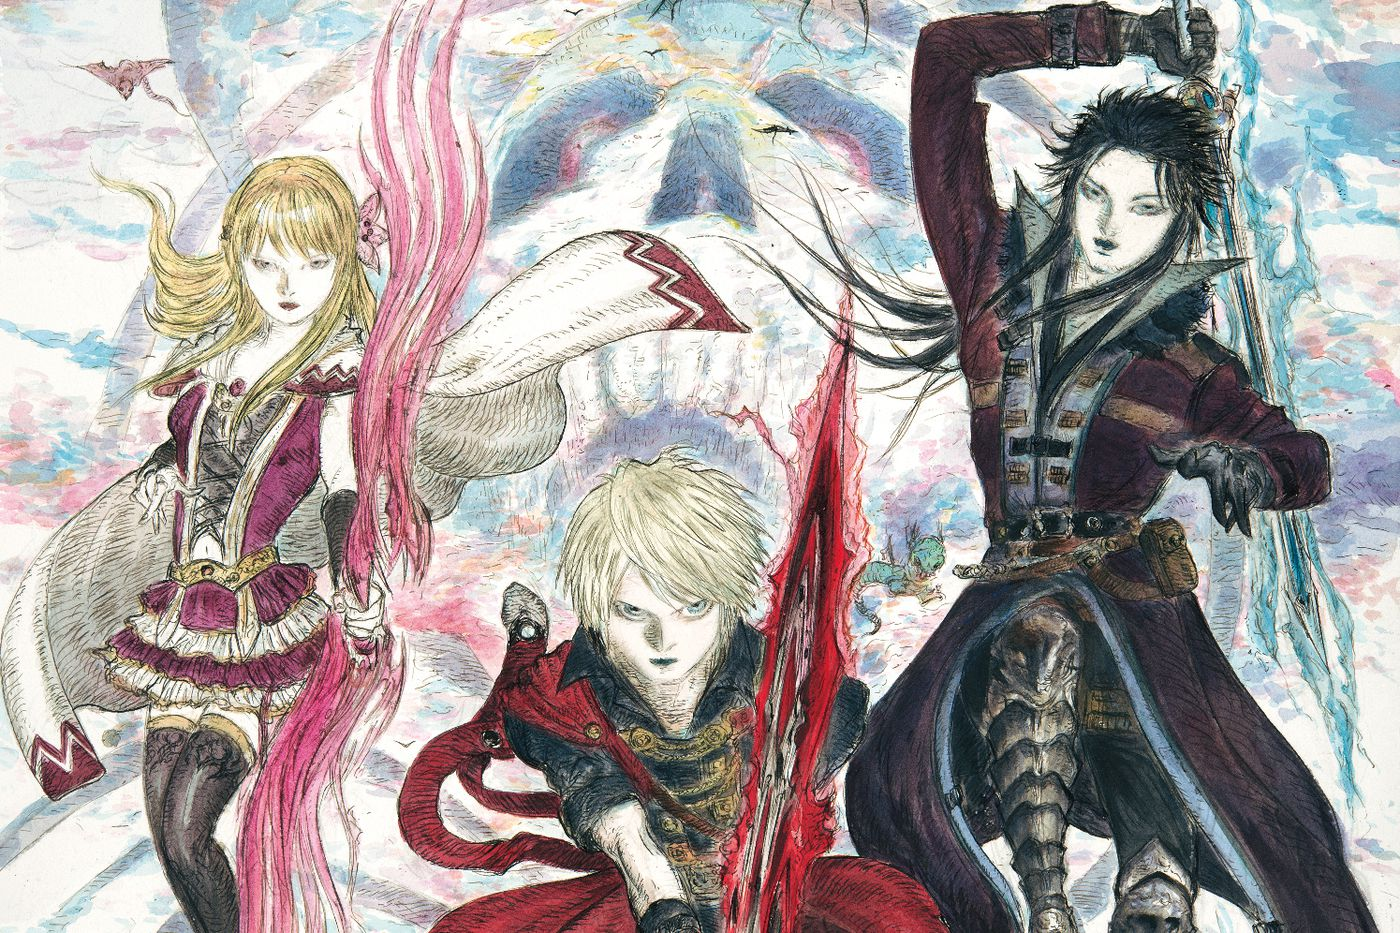 Final Fantasy Brave Exvius players tell of spending thousands of